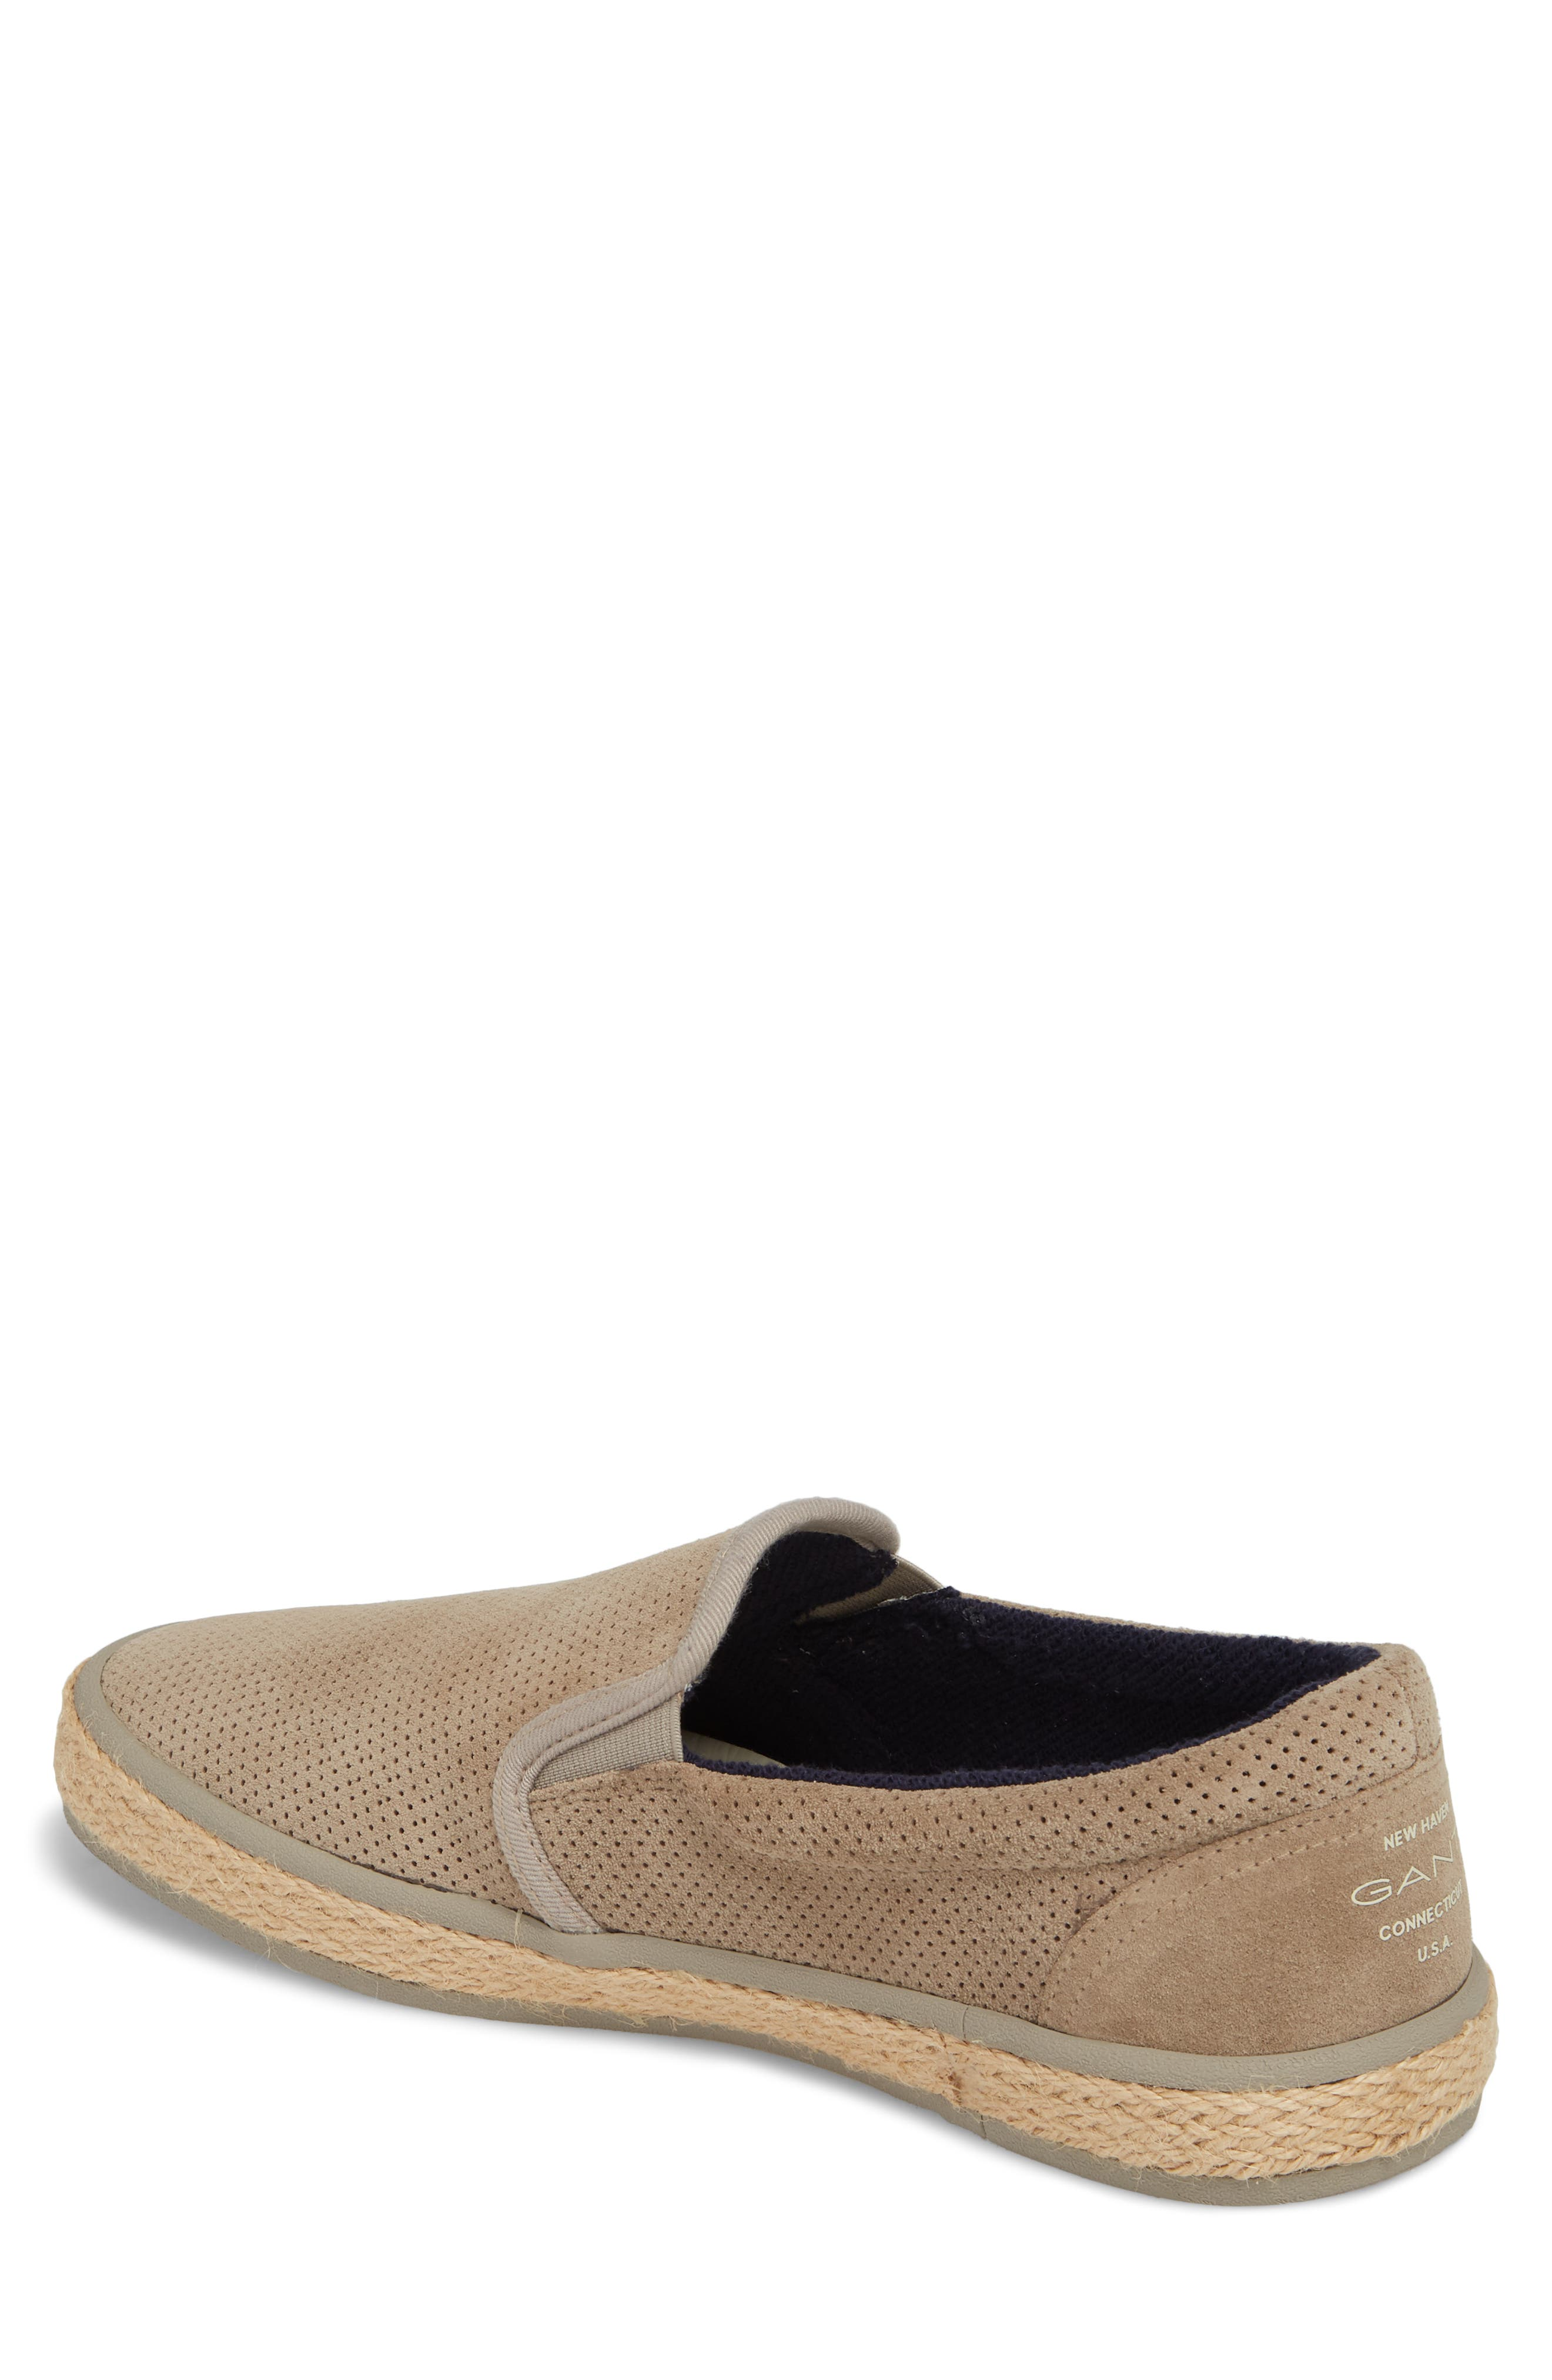 Master Perforated Slip-On Sneaker,                             Alternate thumbnail 2, color,                             Cashew Brown